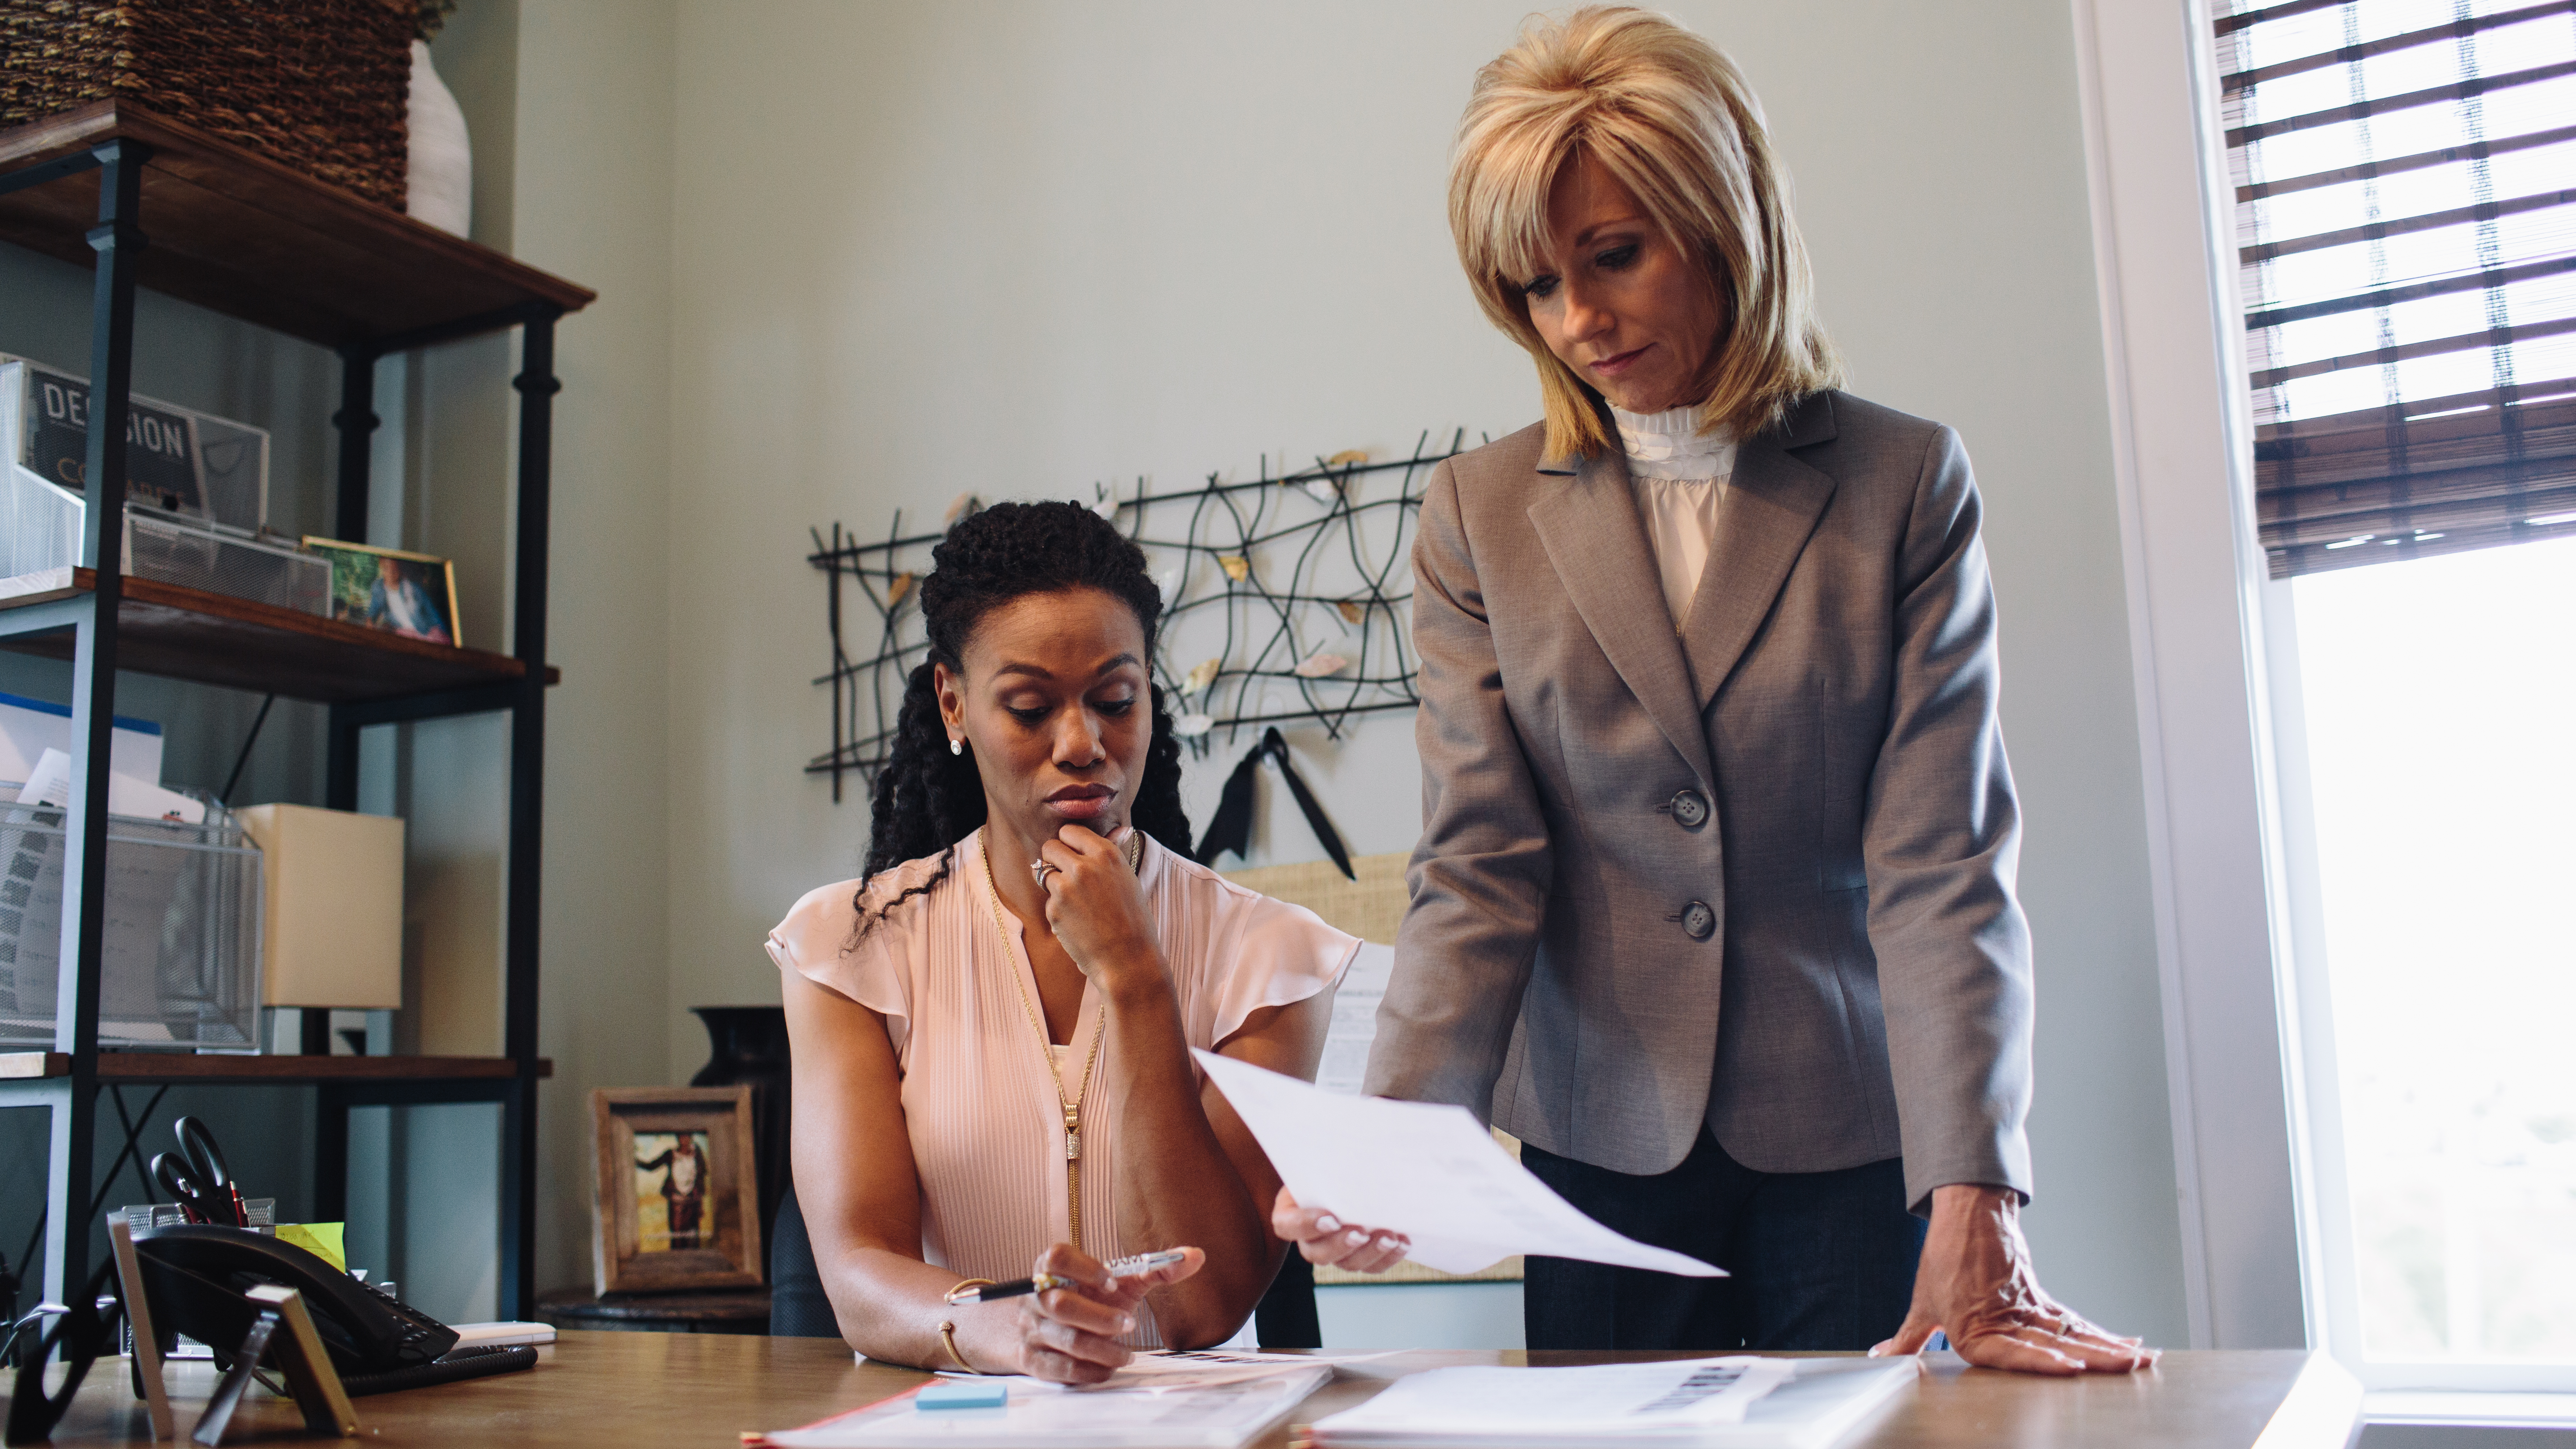 Priscilla C. Shirer and Beth Moore in War Room (2015)